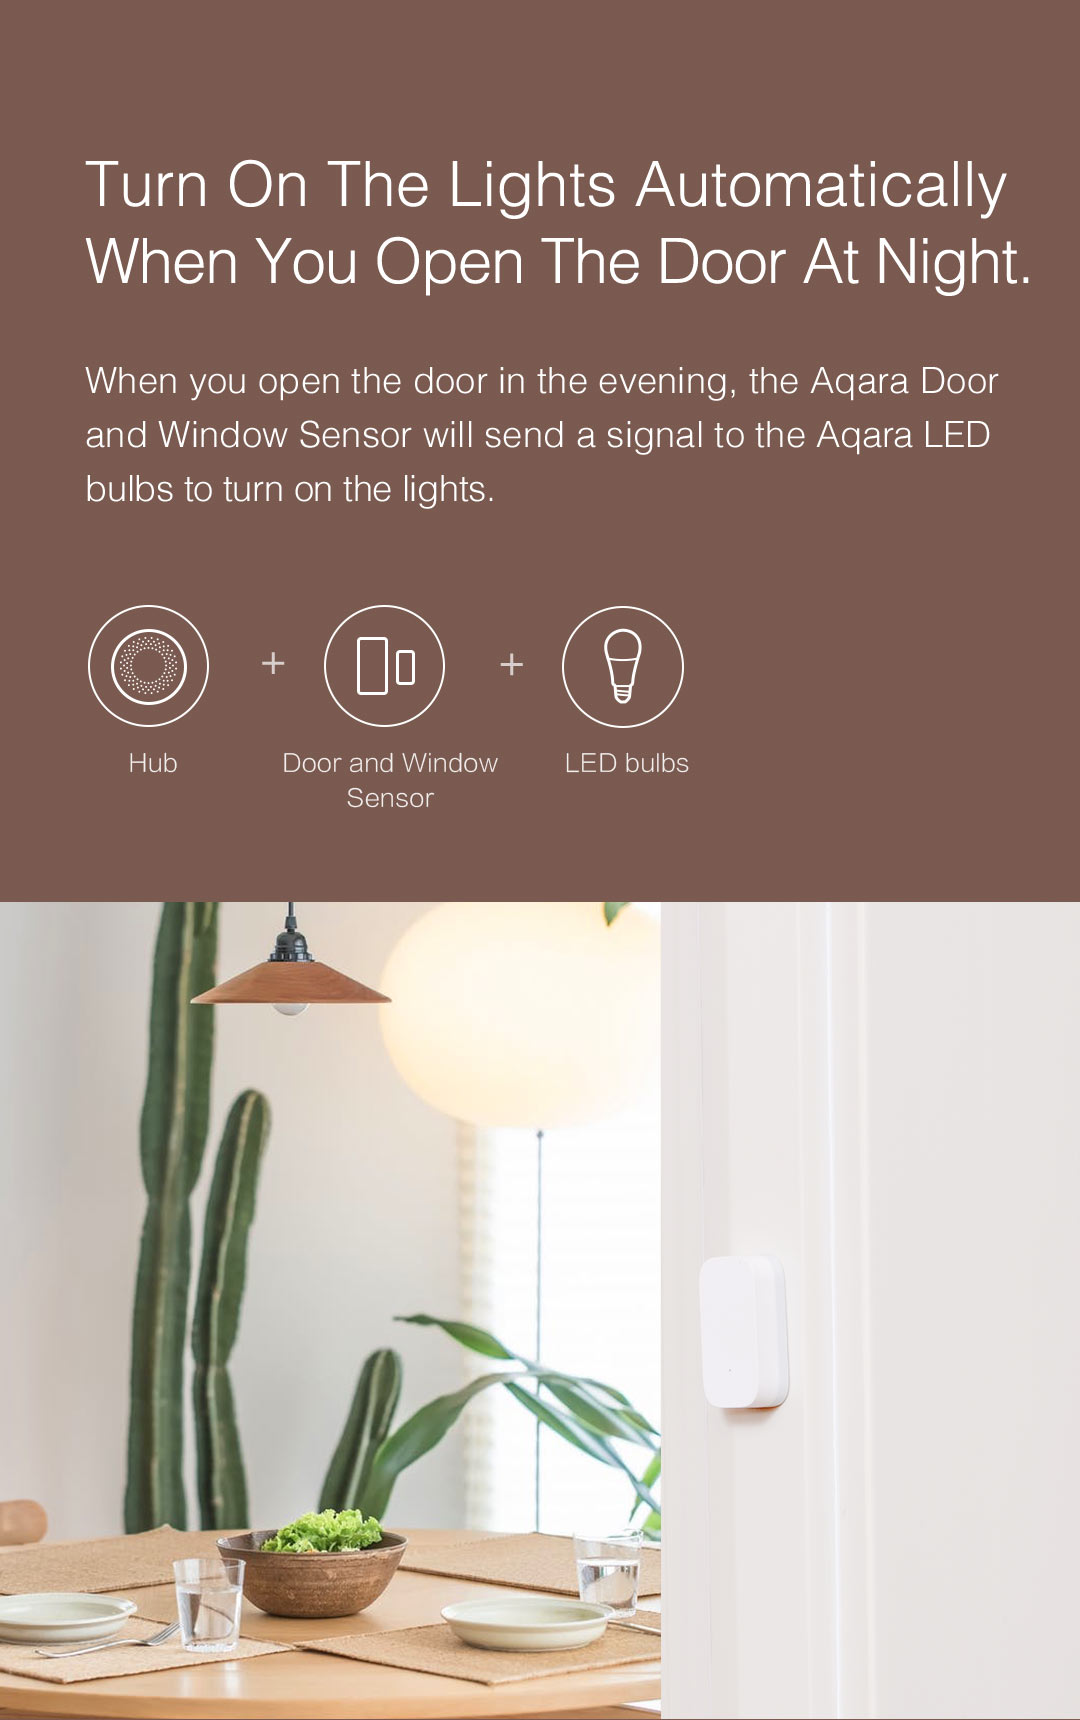 When you open the door in the evening, smart door sensor helps turn on the lights automatically